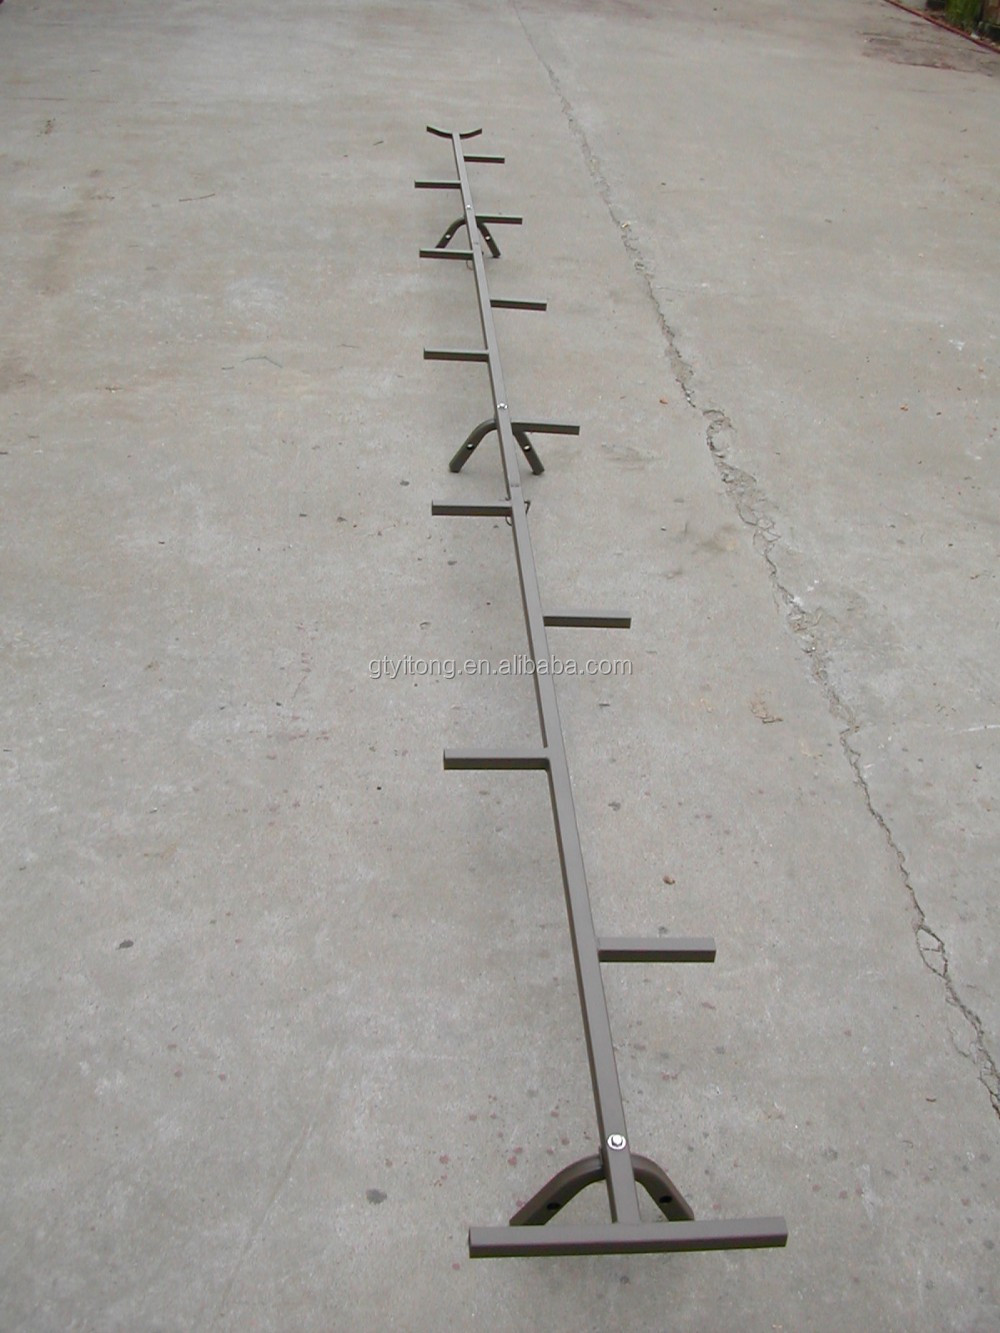 Ladders For Tree Stand Climbing